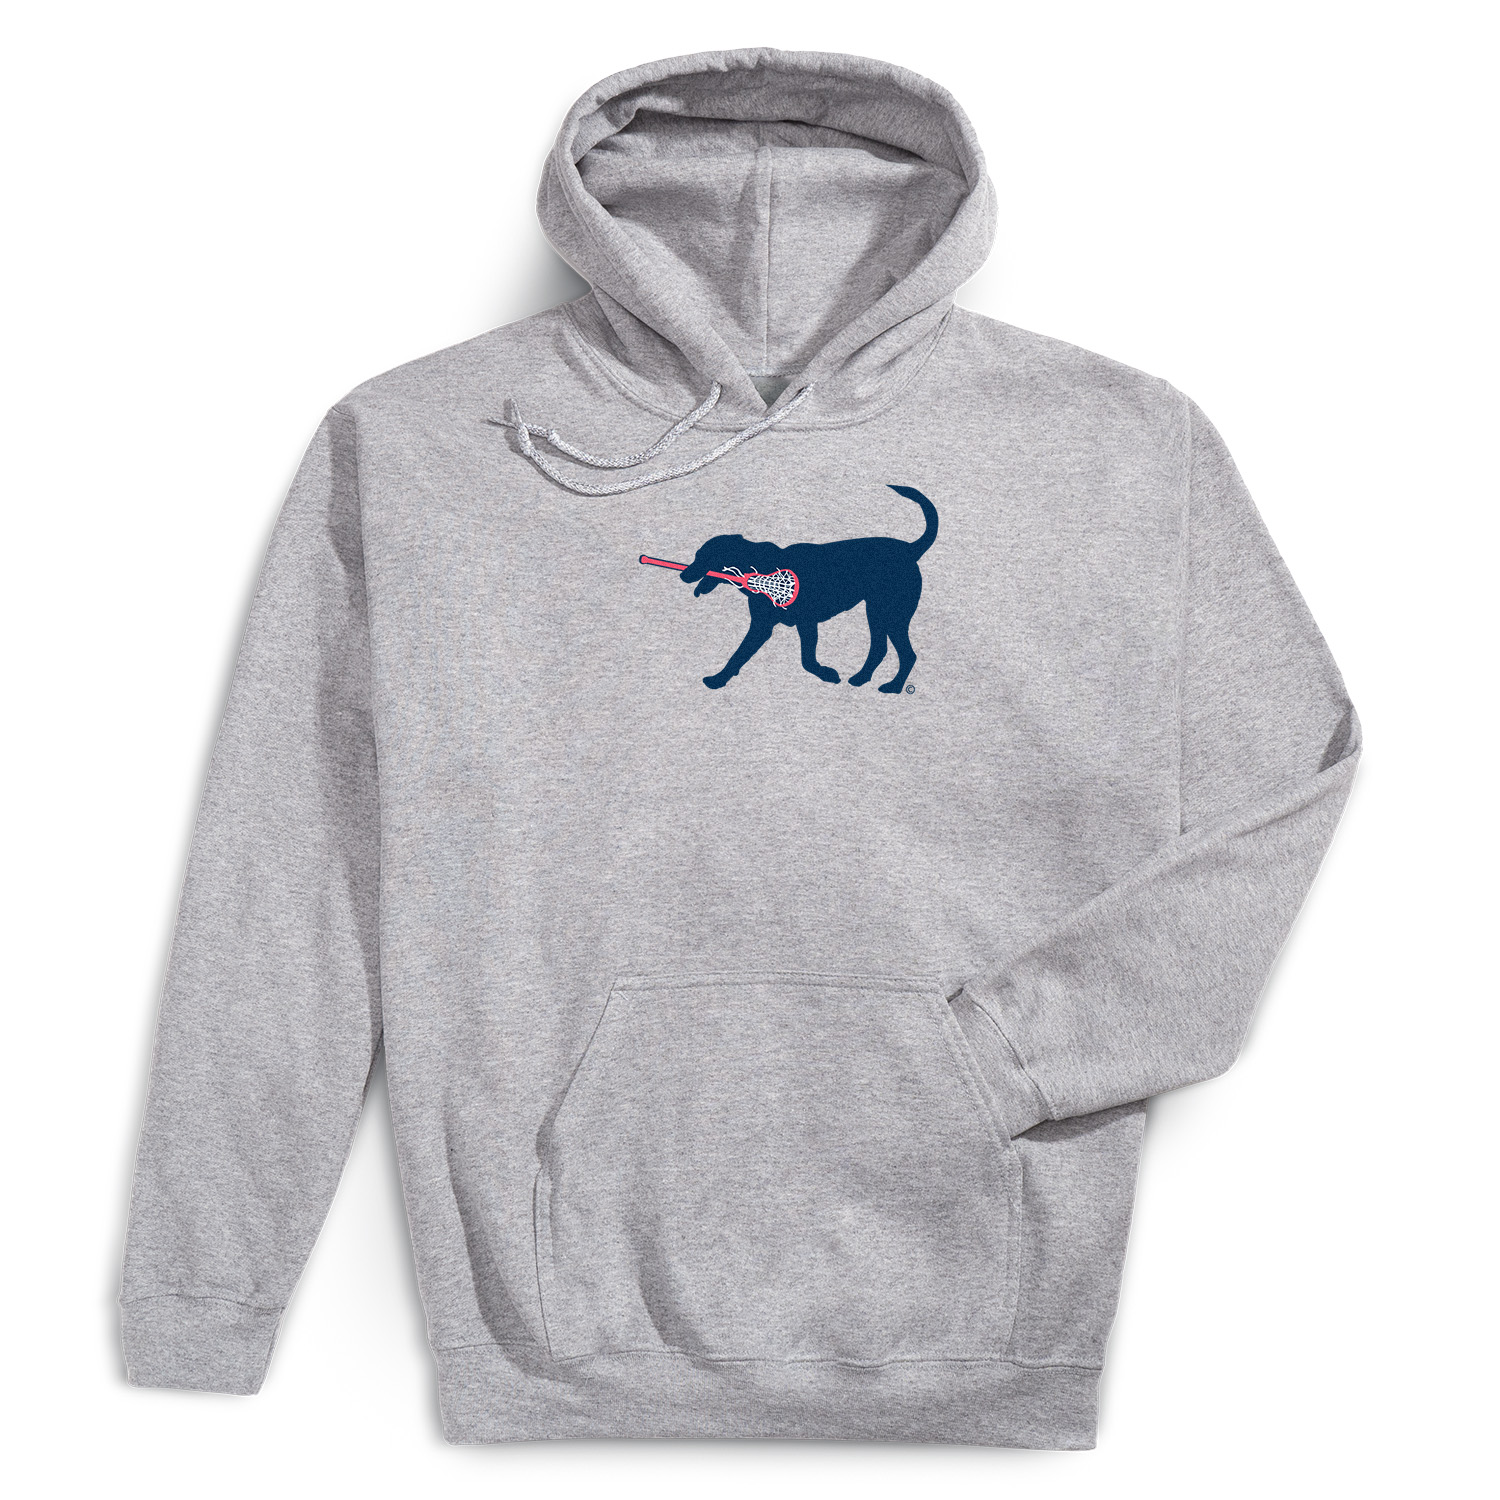 Girls Lacrosse Hooded Sweatshirt - LuLa The LAX Dog(Blue)